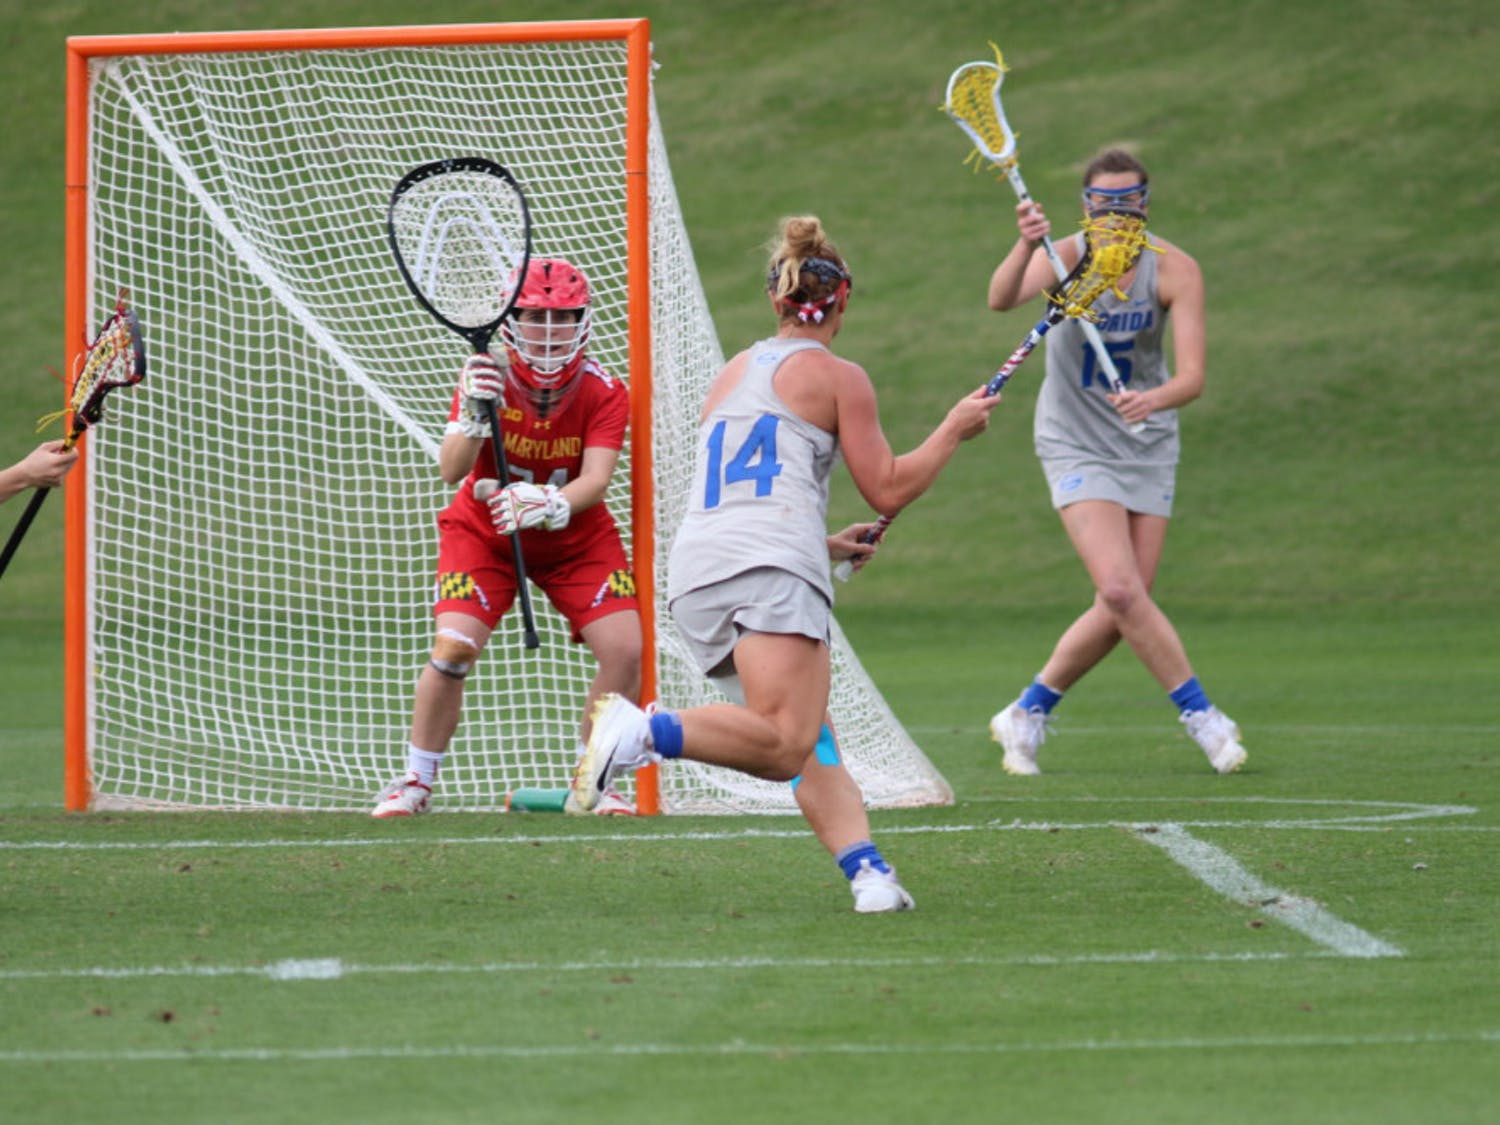 Lindsey Ronbeck scored five goals and one assist in the Florida lacrosse team's 32-1 win over Scotland on Saturday.